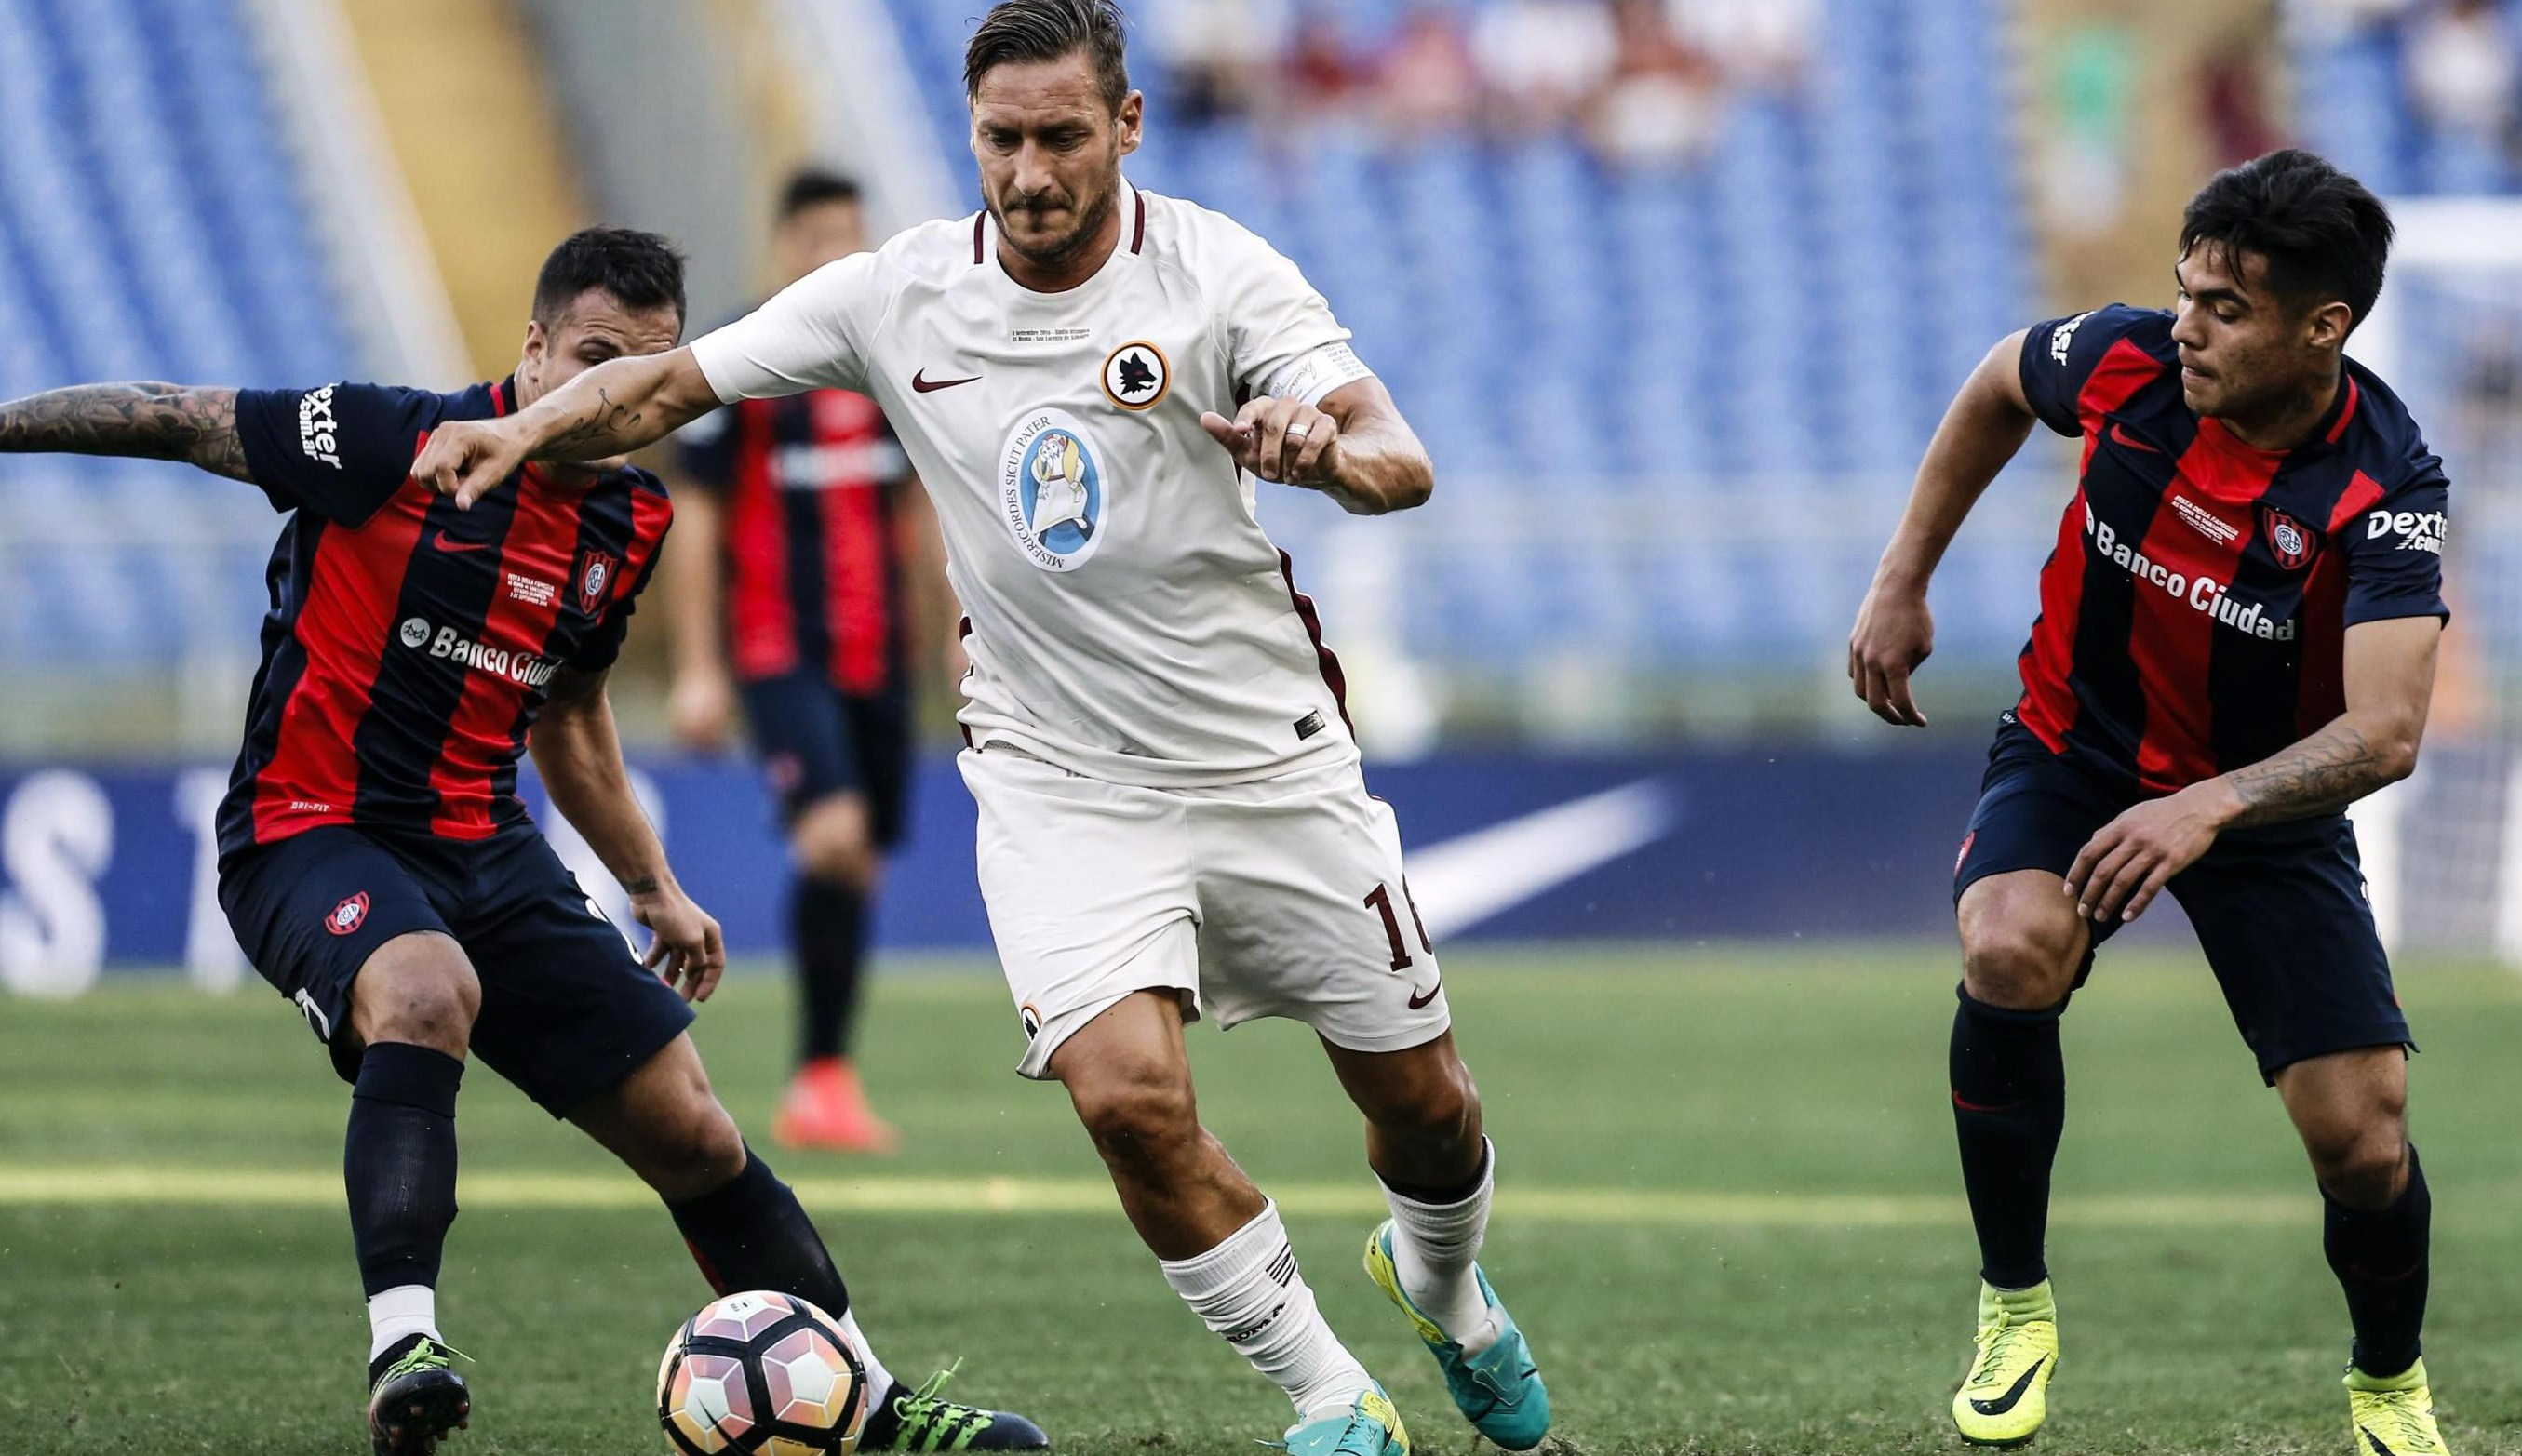 . Rome (Italia), 03/09/2016.- Romas Francesco Totti (C) in action during the charity friendly soccer match AS Roma vs San Lorenzo de Almagro at Olimpico stadium in Rome, Italy, 03 September 2016. The match is held for the victims of the 6.0 magnitude earthquake that struck central Italy on 24 August. (Futbol, Amistoso, Terremoto/sismo, Roma, Italia) EFE/EPA/ANGELO CARCONI